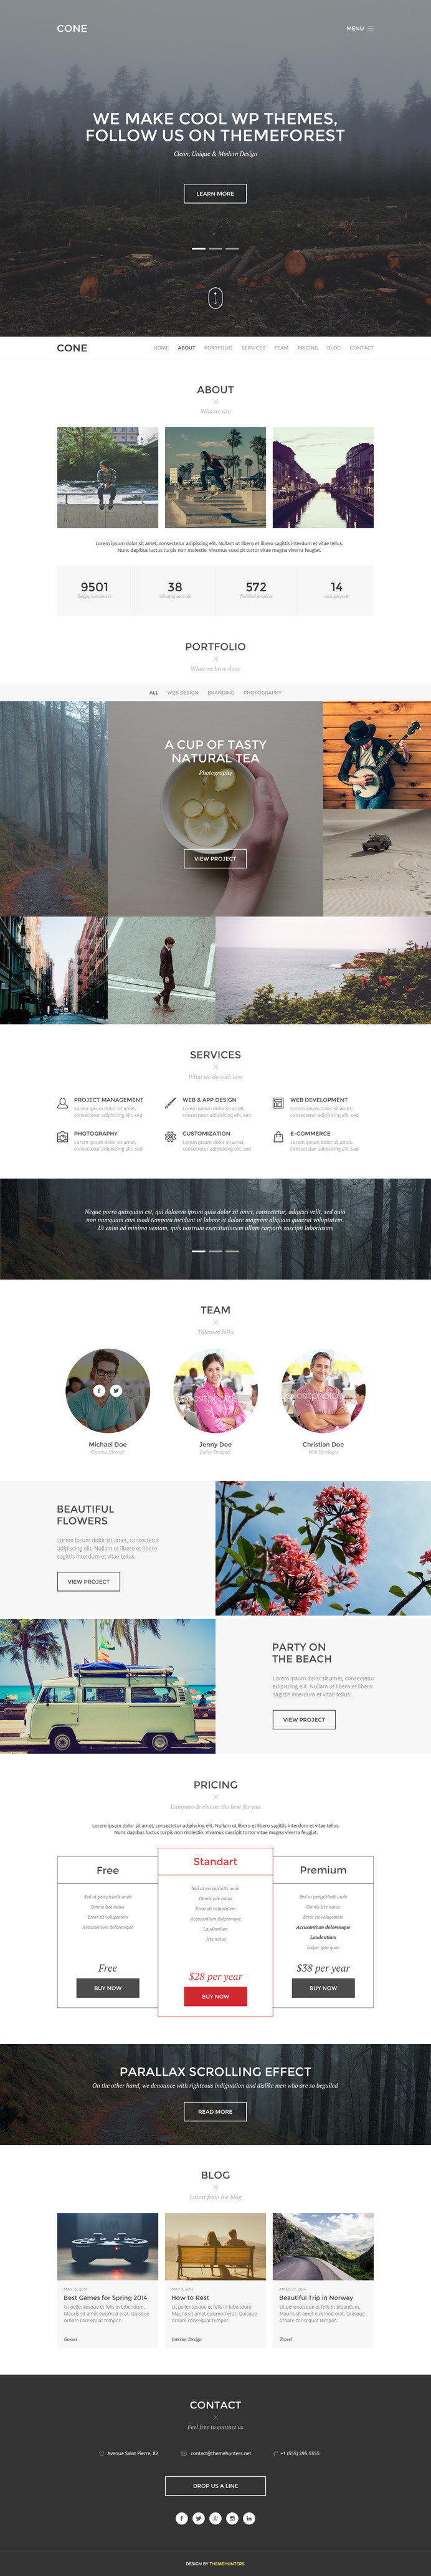 CONE - Onepage PSD Template #web